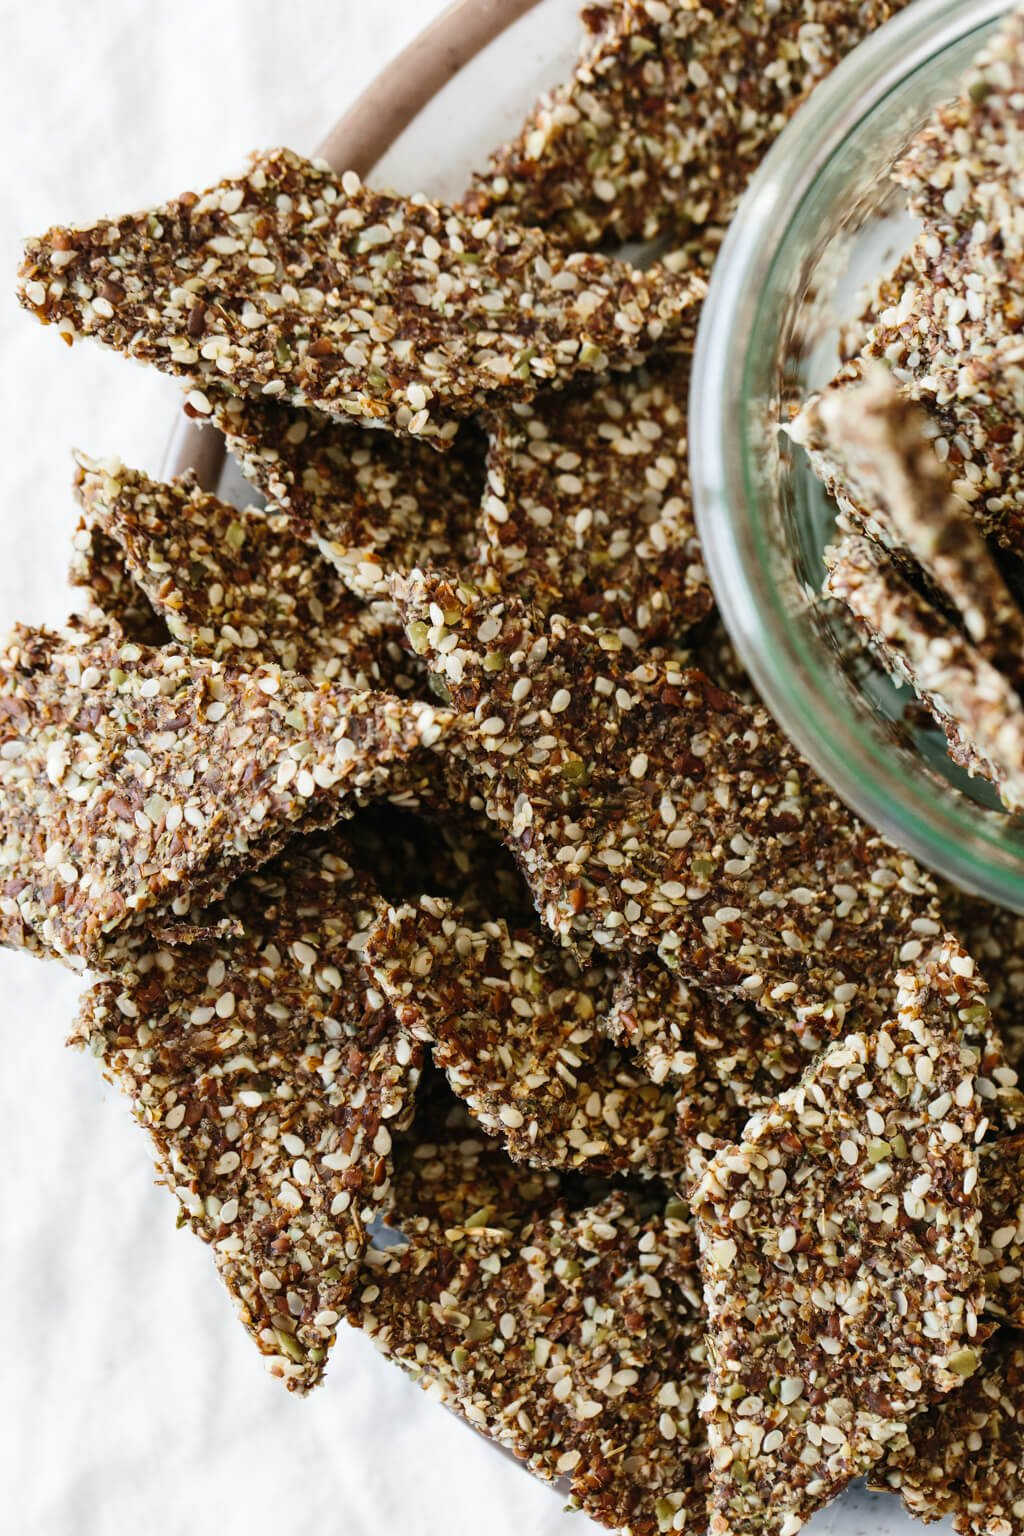 Flax seed crackers are a crunchy, flavorful, homemade cracker recipe that's naturally gluten-free, grain-free, nut-free, paleo and vegan. Made from flax seeds, chia seeds, sesame seeds and pumpkin seeds, they're super easy to make and great for snacking.